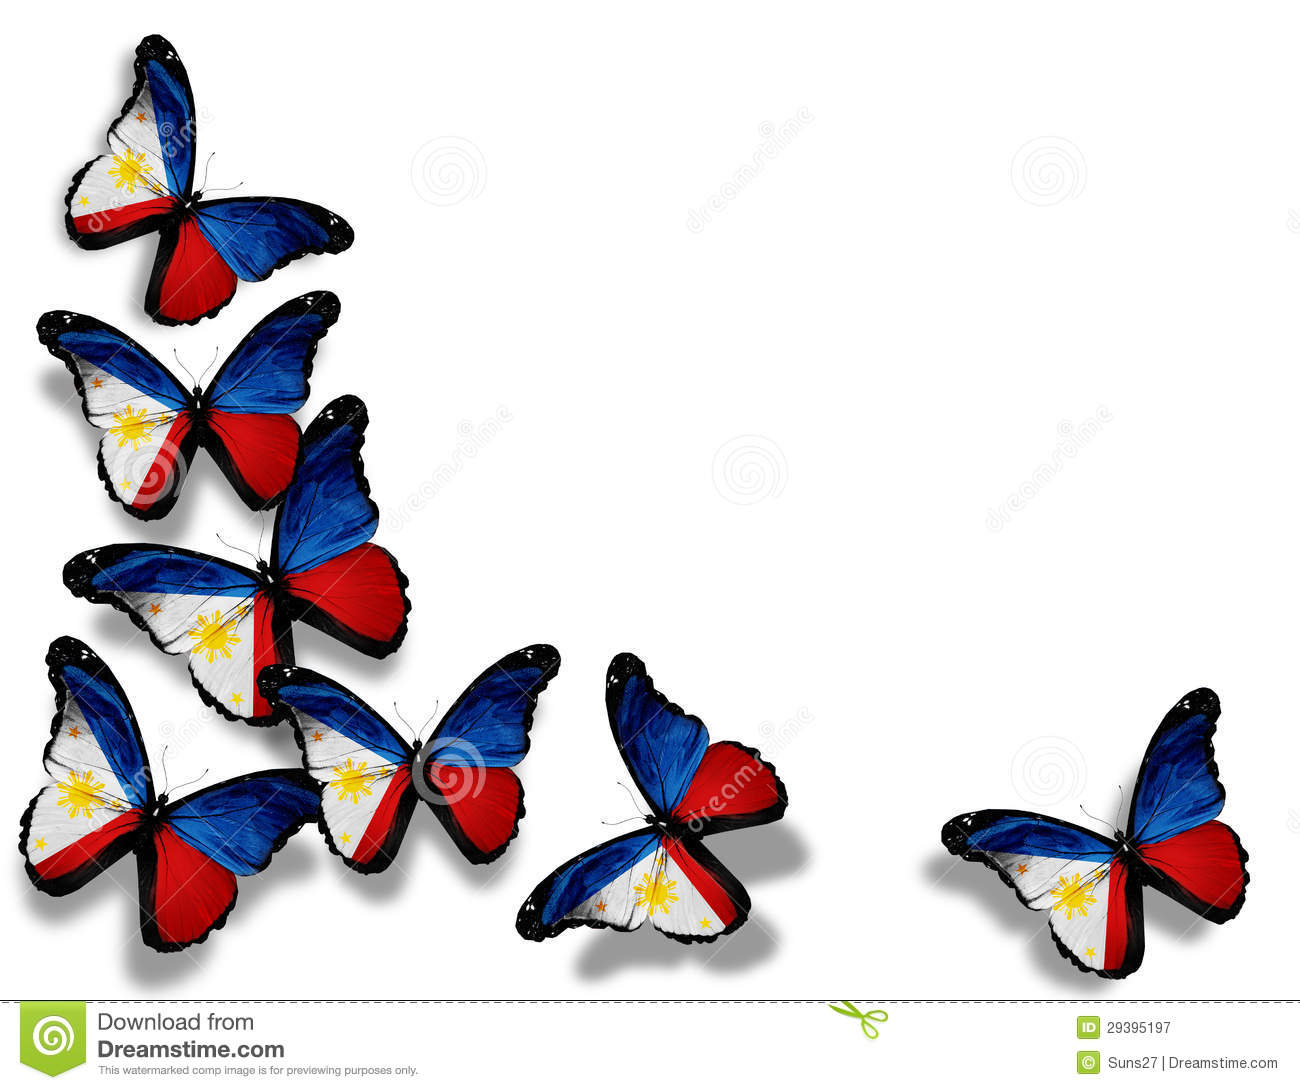 Symbol of philippine flag images symbol and sign ideas philippine flag butterflies isolated on white stock illustration philippine flag butterflies isolated on white buycottarizona buycottarizona